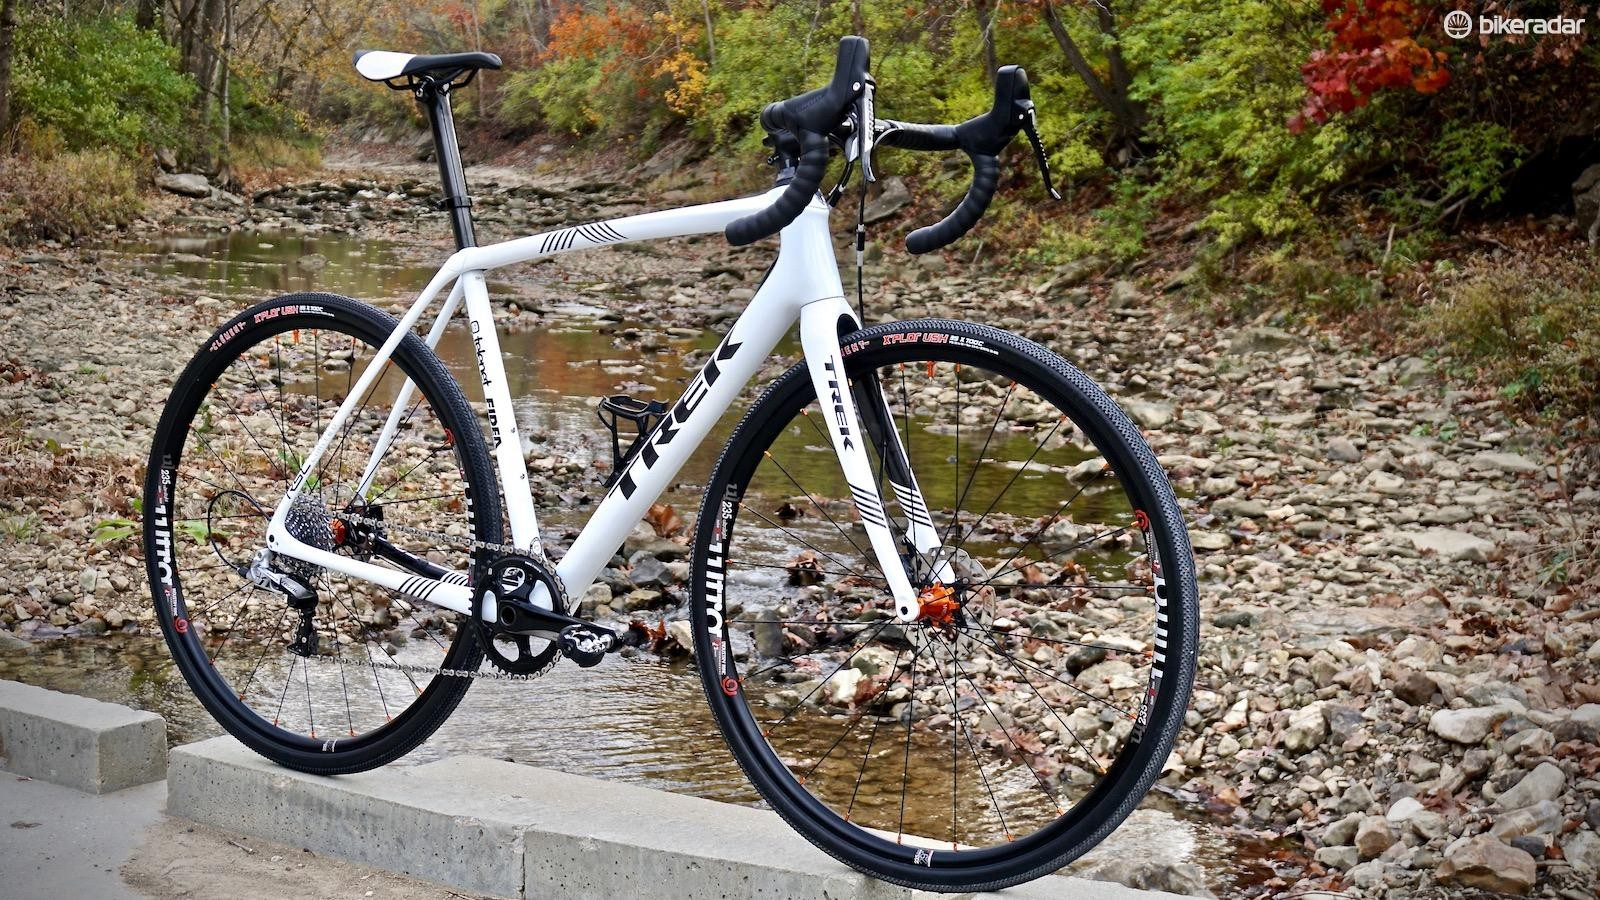 Although late to the party, the Boone went through the same evaluation process and parts kit as every other contender for best cyclocross bike